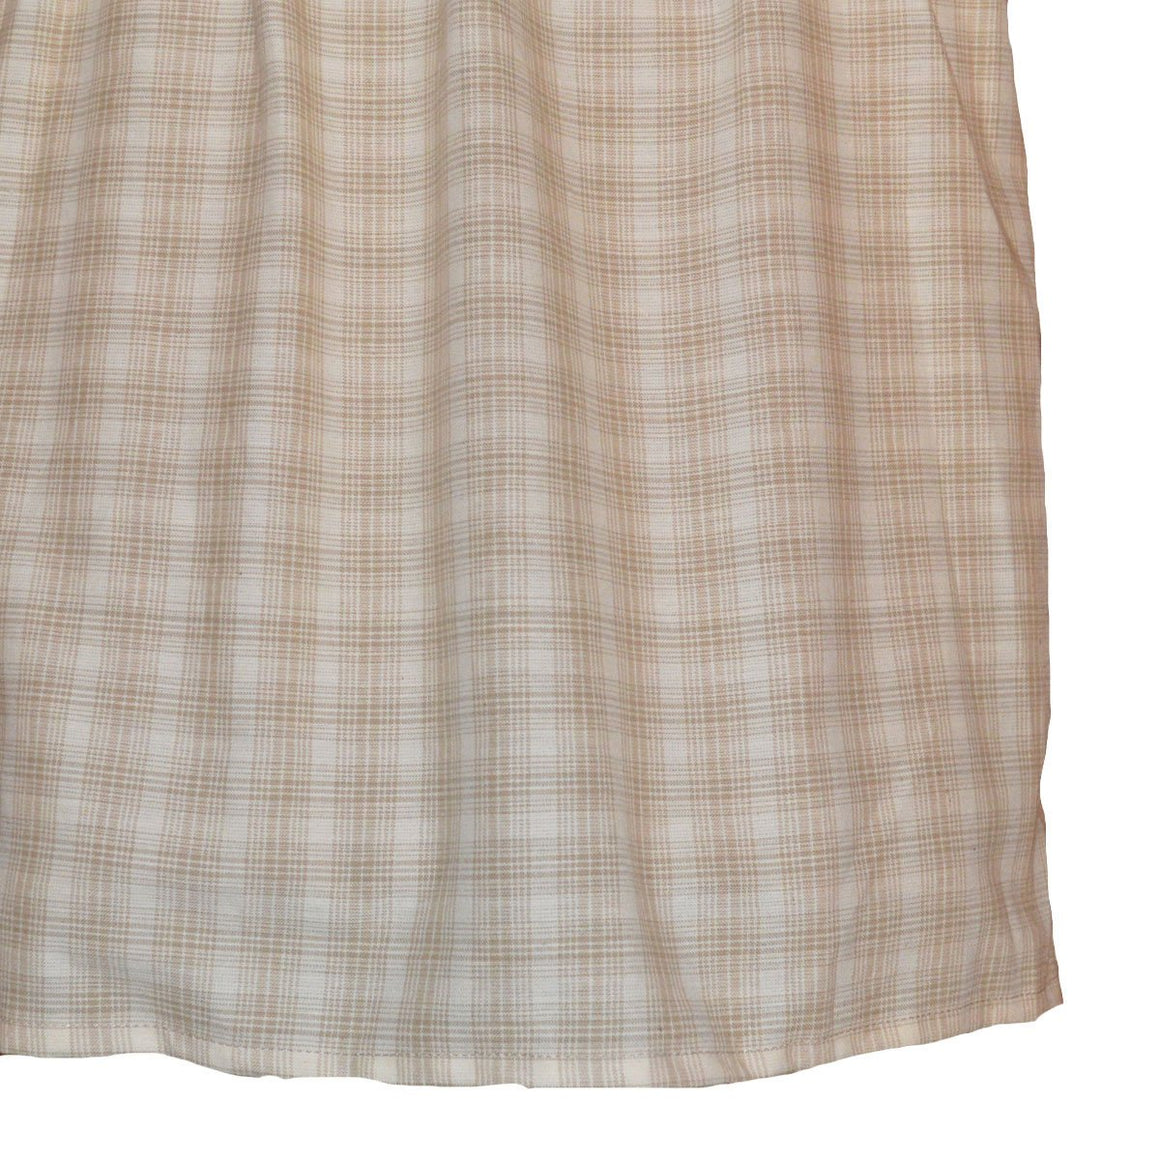 Wheaten Plaid Bedskirt